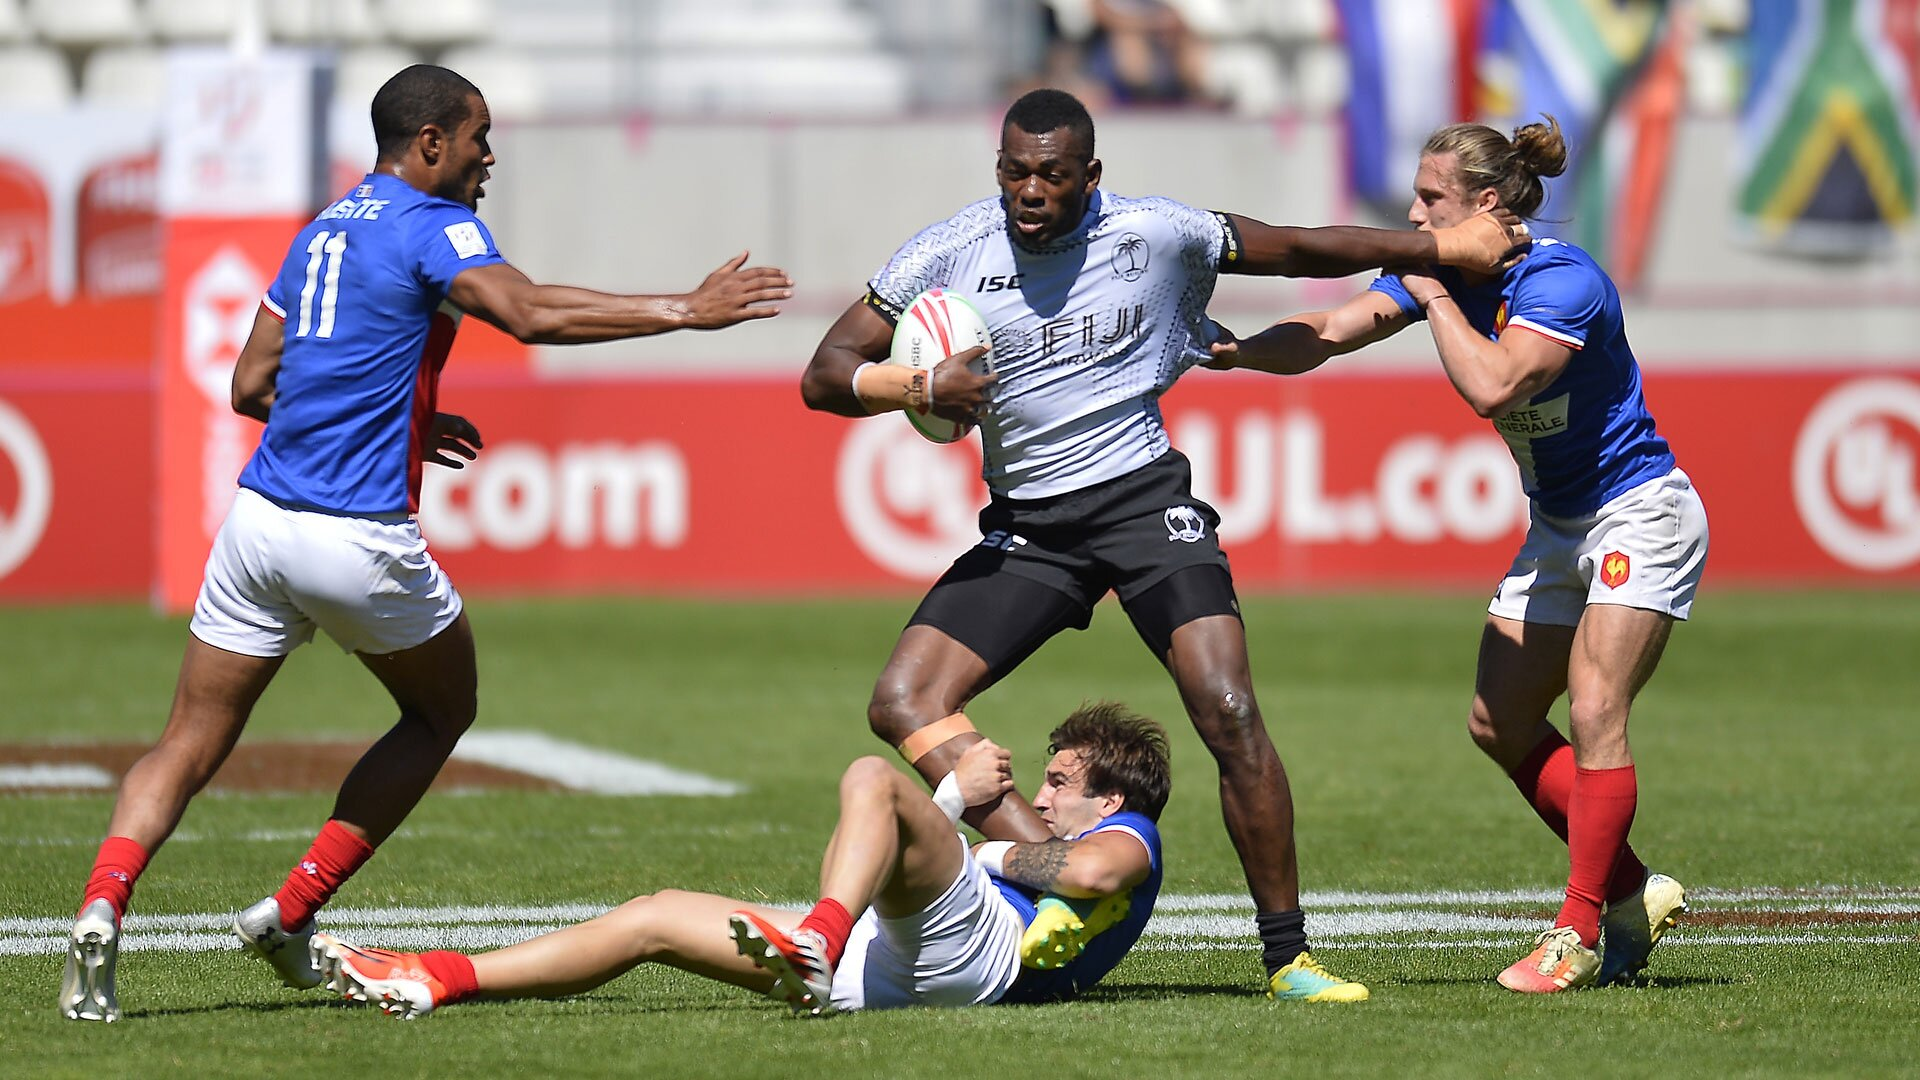 Fiji could jump ahead of France in World Rankings after weekend matches